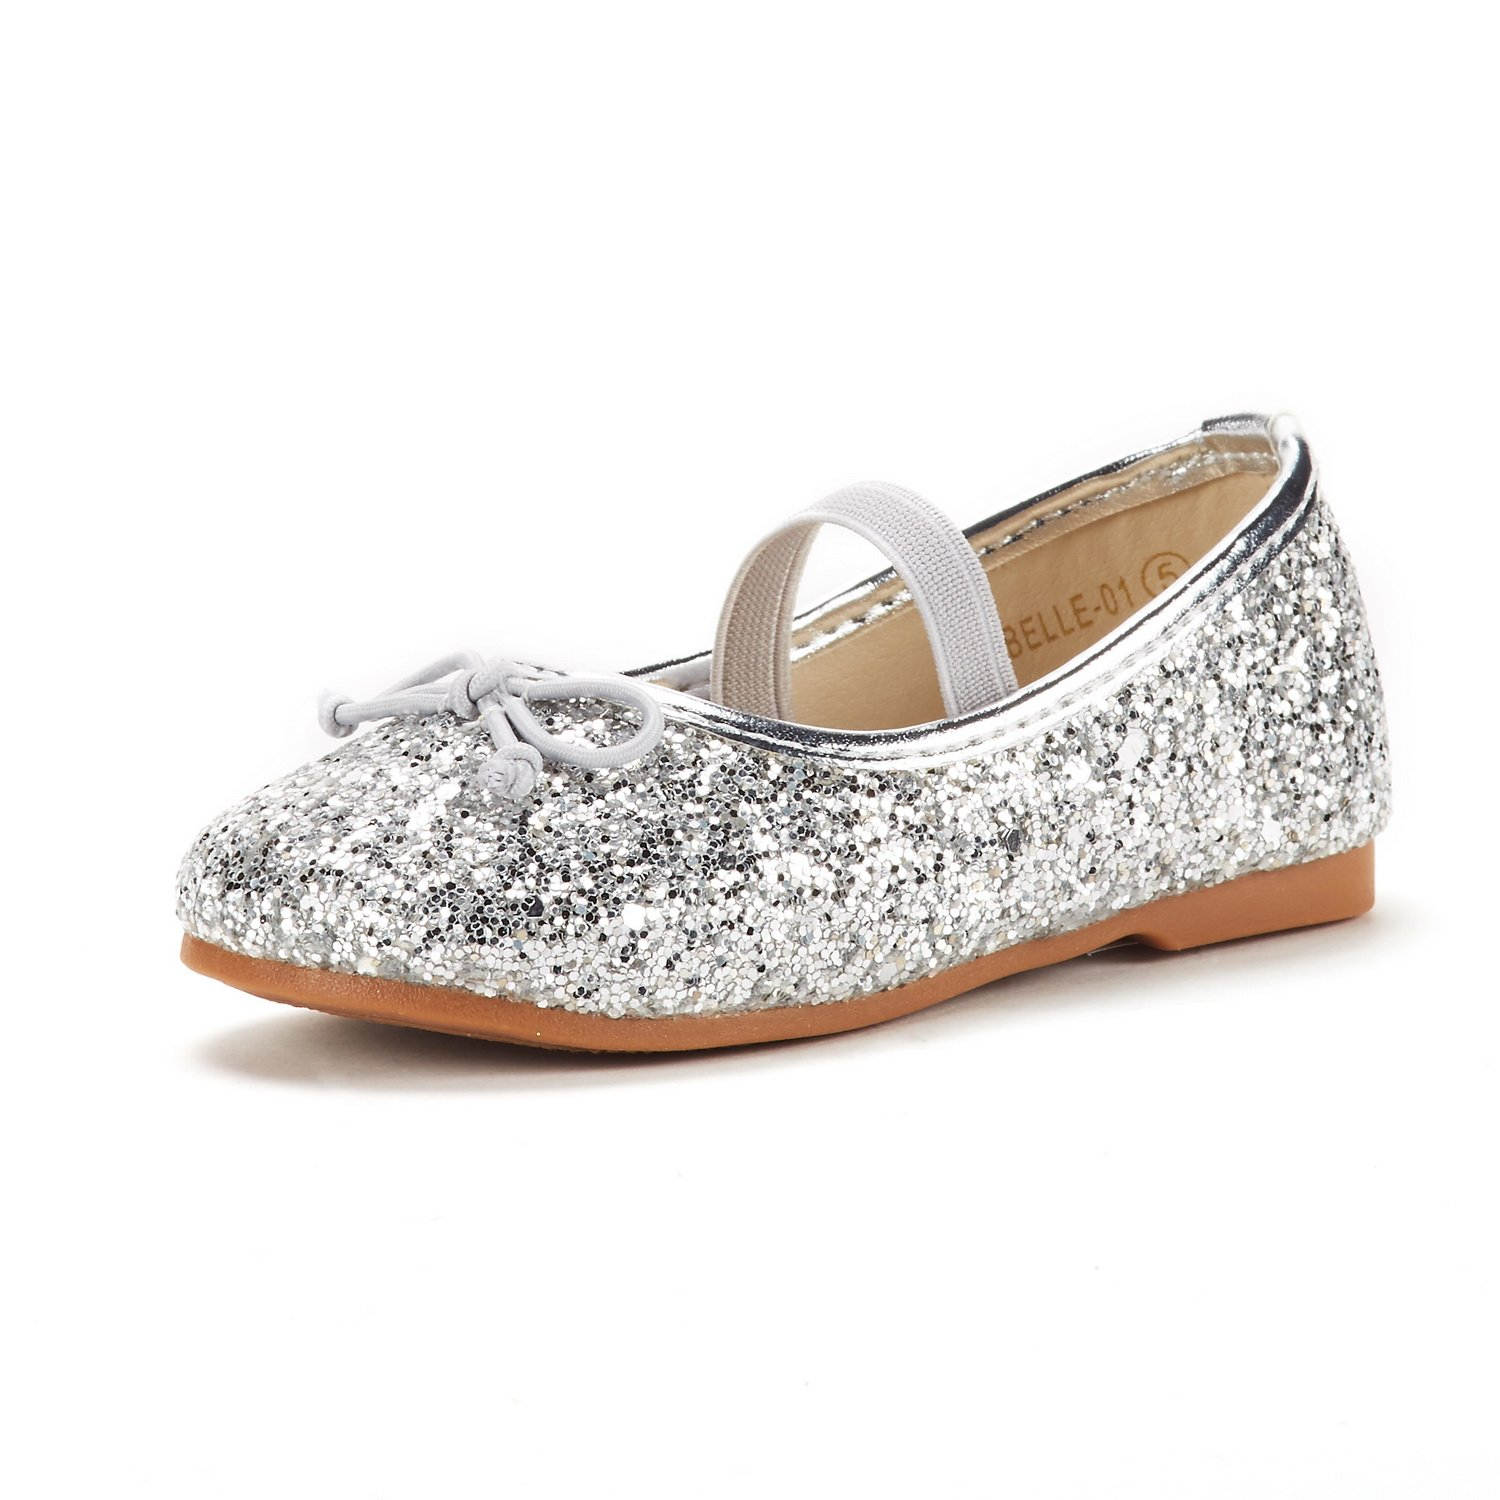 DREAM PAIRS Toddler Belle_01 Silver Girl's Mary Jane Ballerina Flat Shoes Size 4 M US Toddler